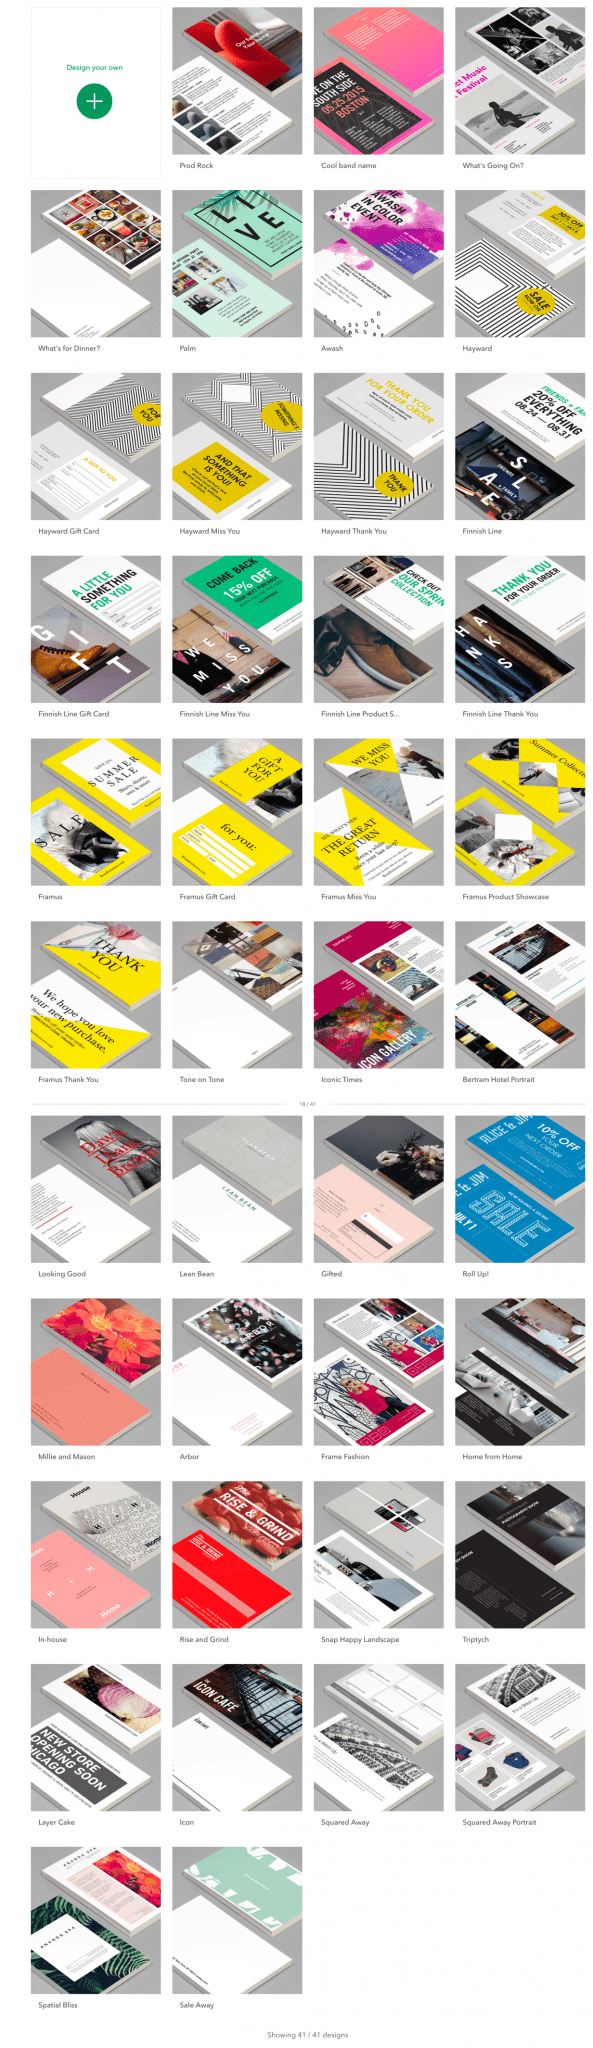 Screenshot of Moo.com's different print design offerings